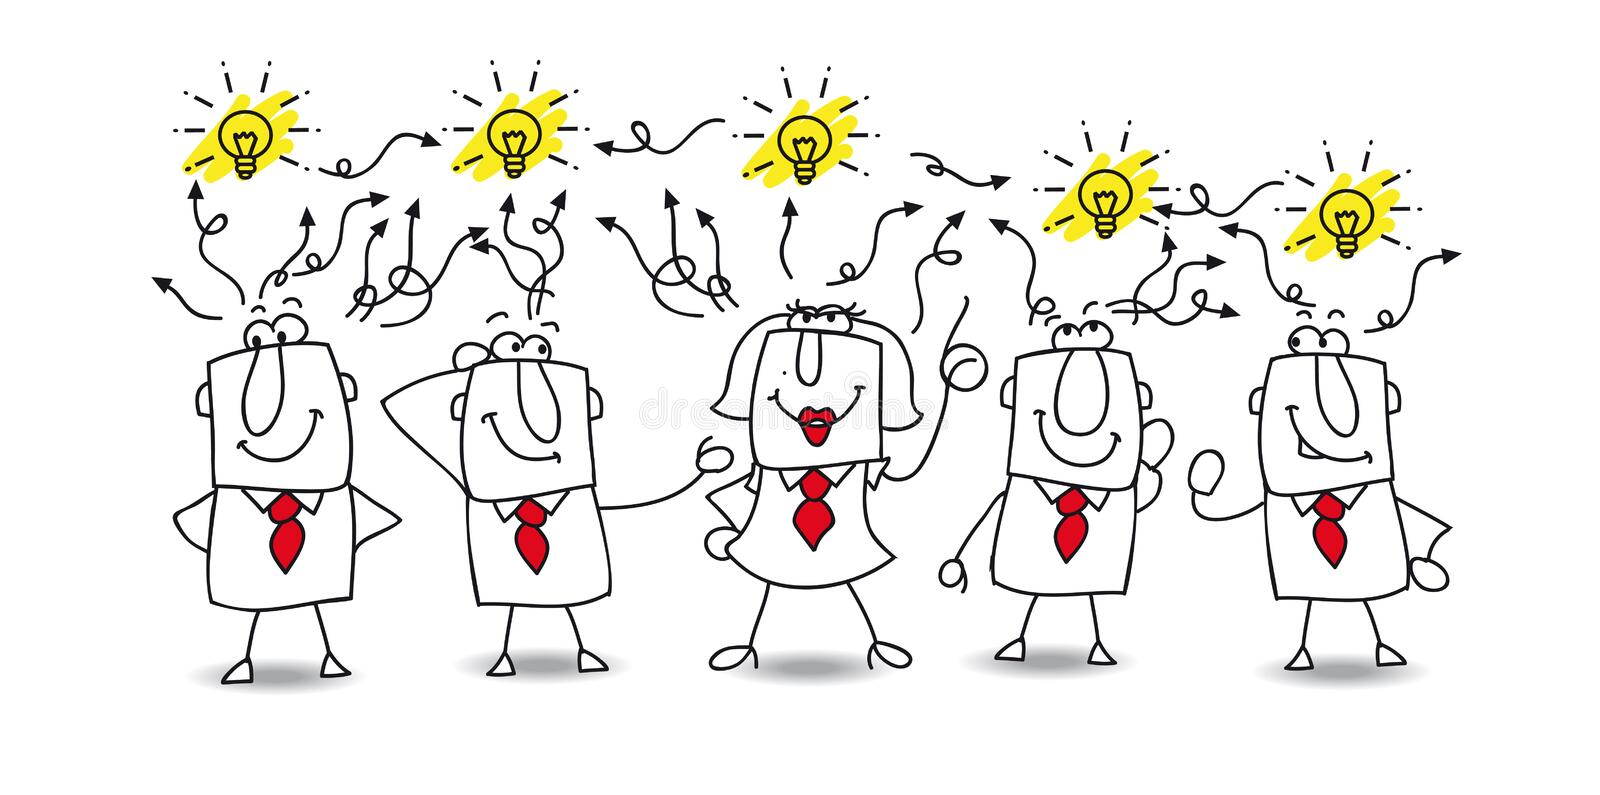 Ideas exchange. Karen and the team exchange their ideas. Finally, they find the solution !they are very creative royalty free illustration